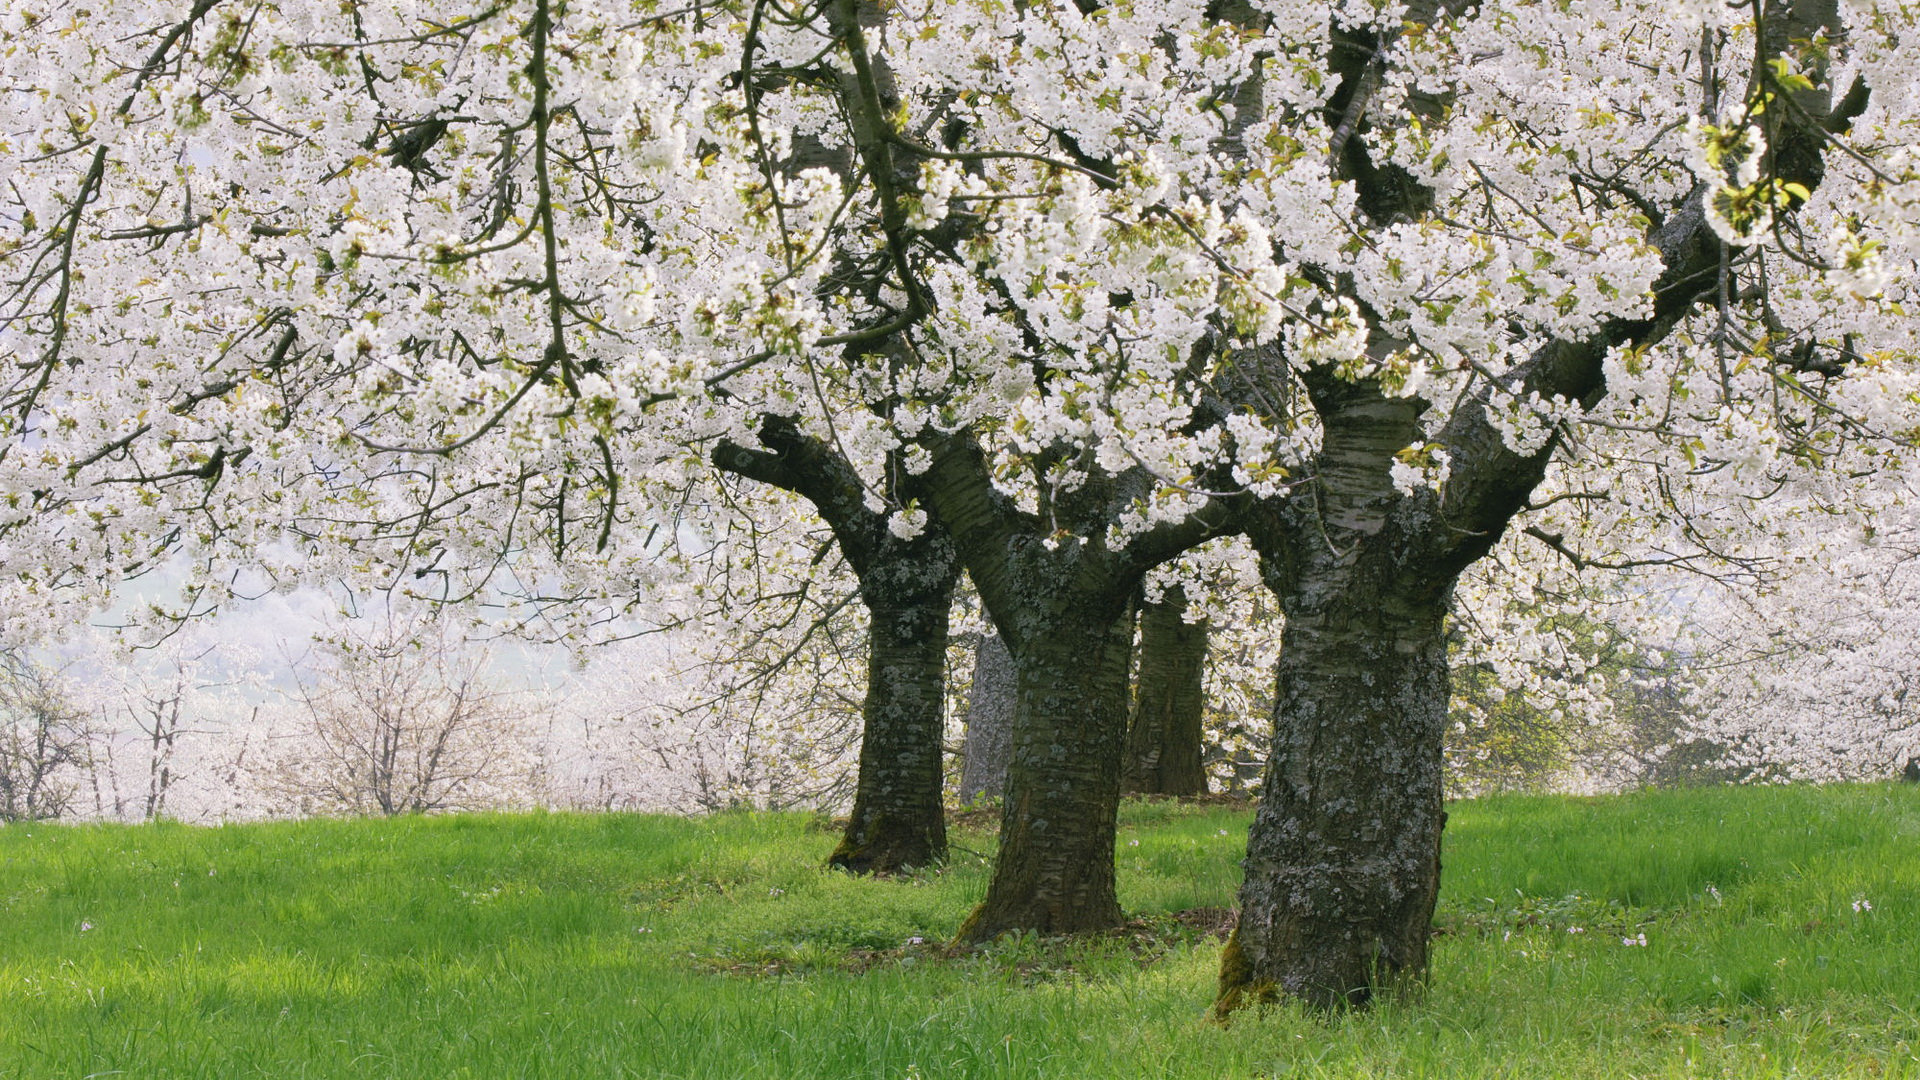 click to free download the wallpaper--Free Download Natural Scenery Picture - Strong Trees in White Blooming Flower, Green Grass, Looking Great 1920X1080 free wallpaper download